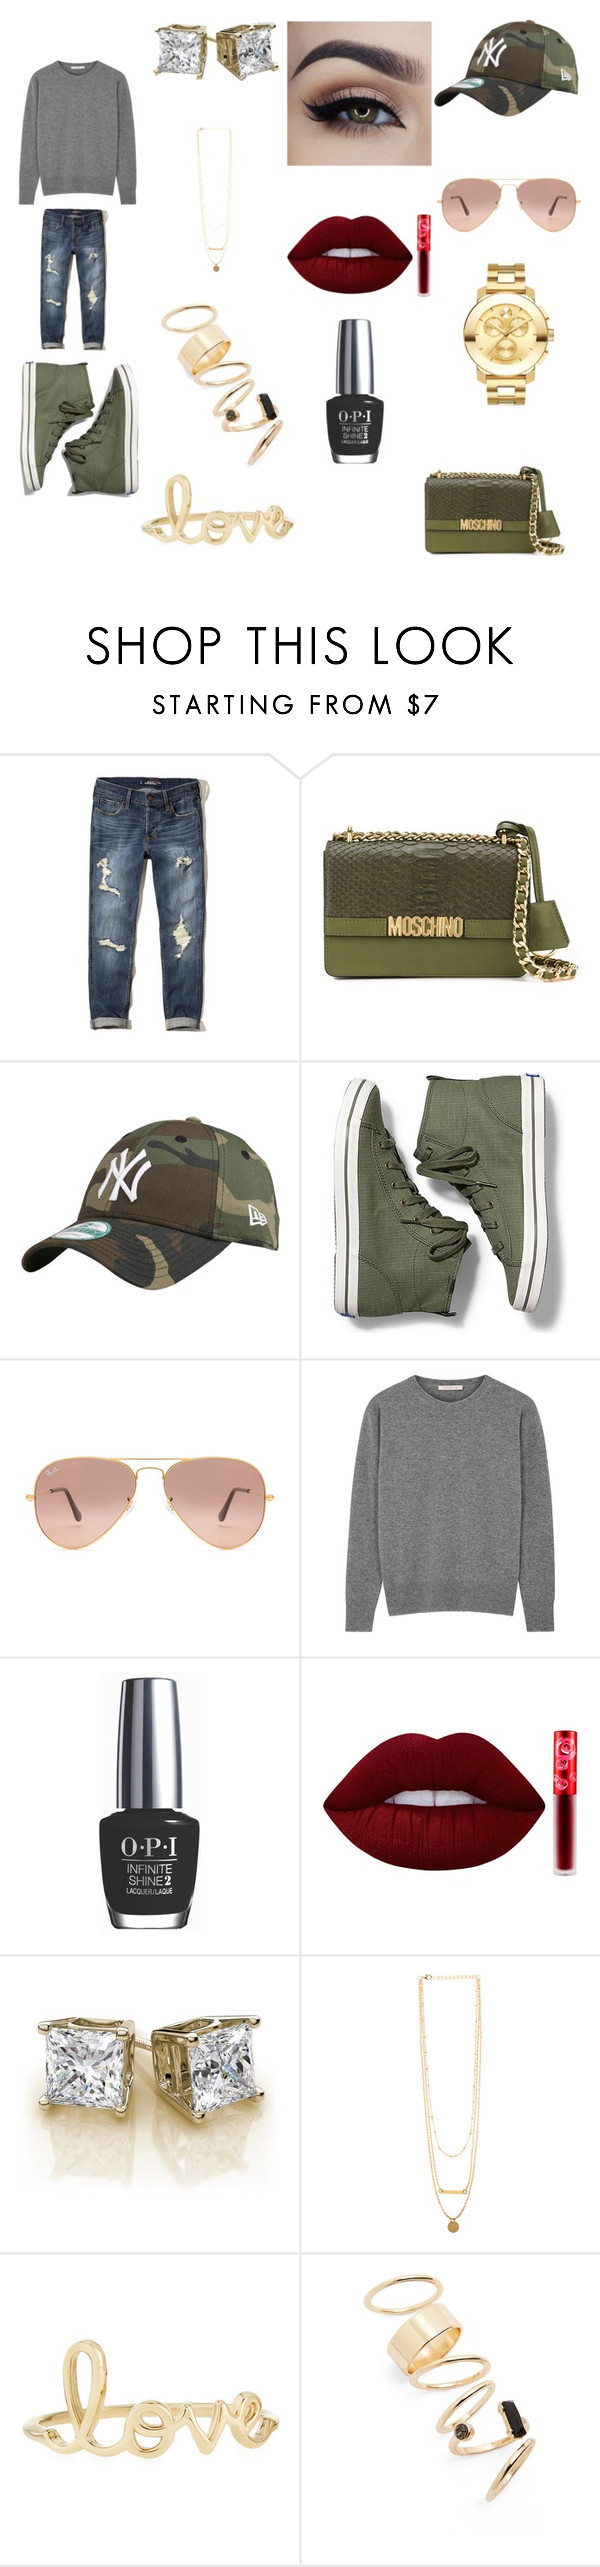 """""""Ready For Fall!"""" by legowonderwoman ❤ liked on Polyvore featuring Hollister Co., Moschino, Keds, Ray-Ban, OPI, Lime Crime, Sydney Evan, BP. and Movado"""